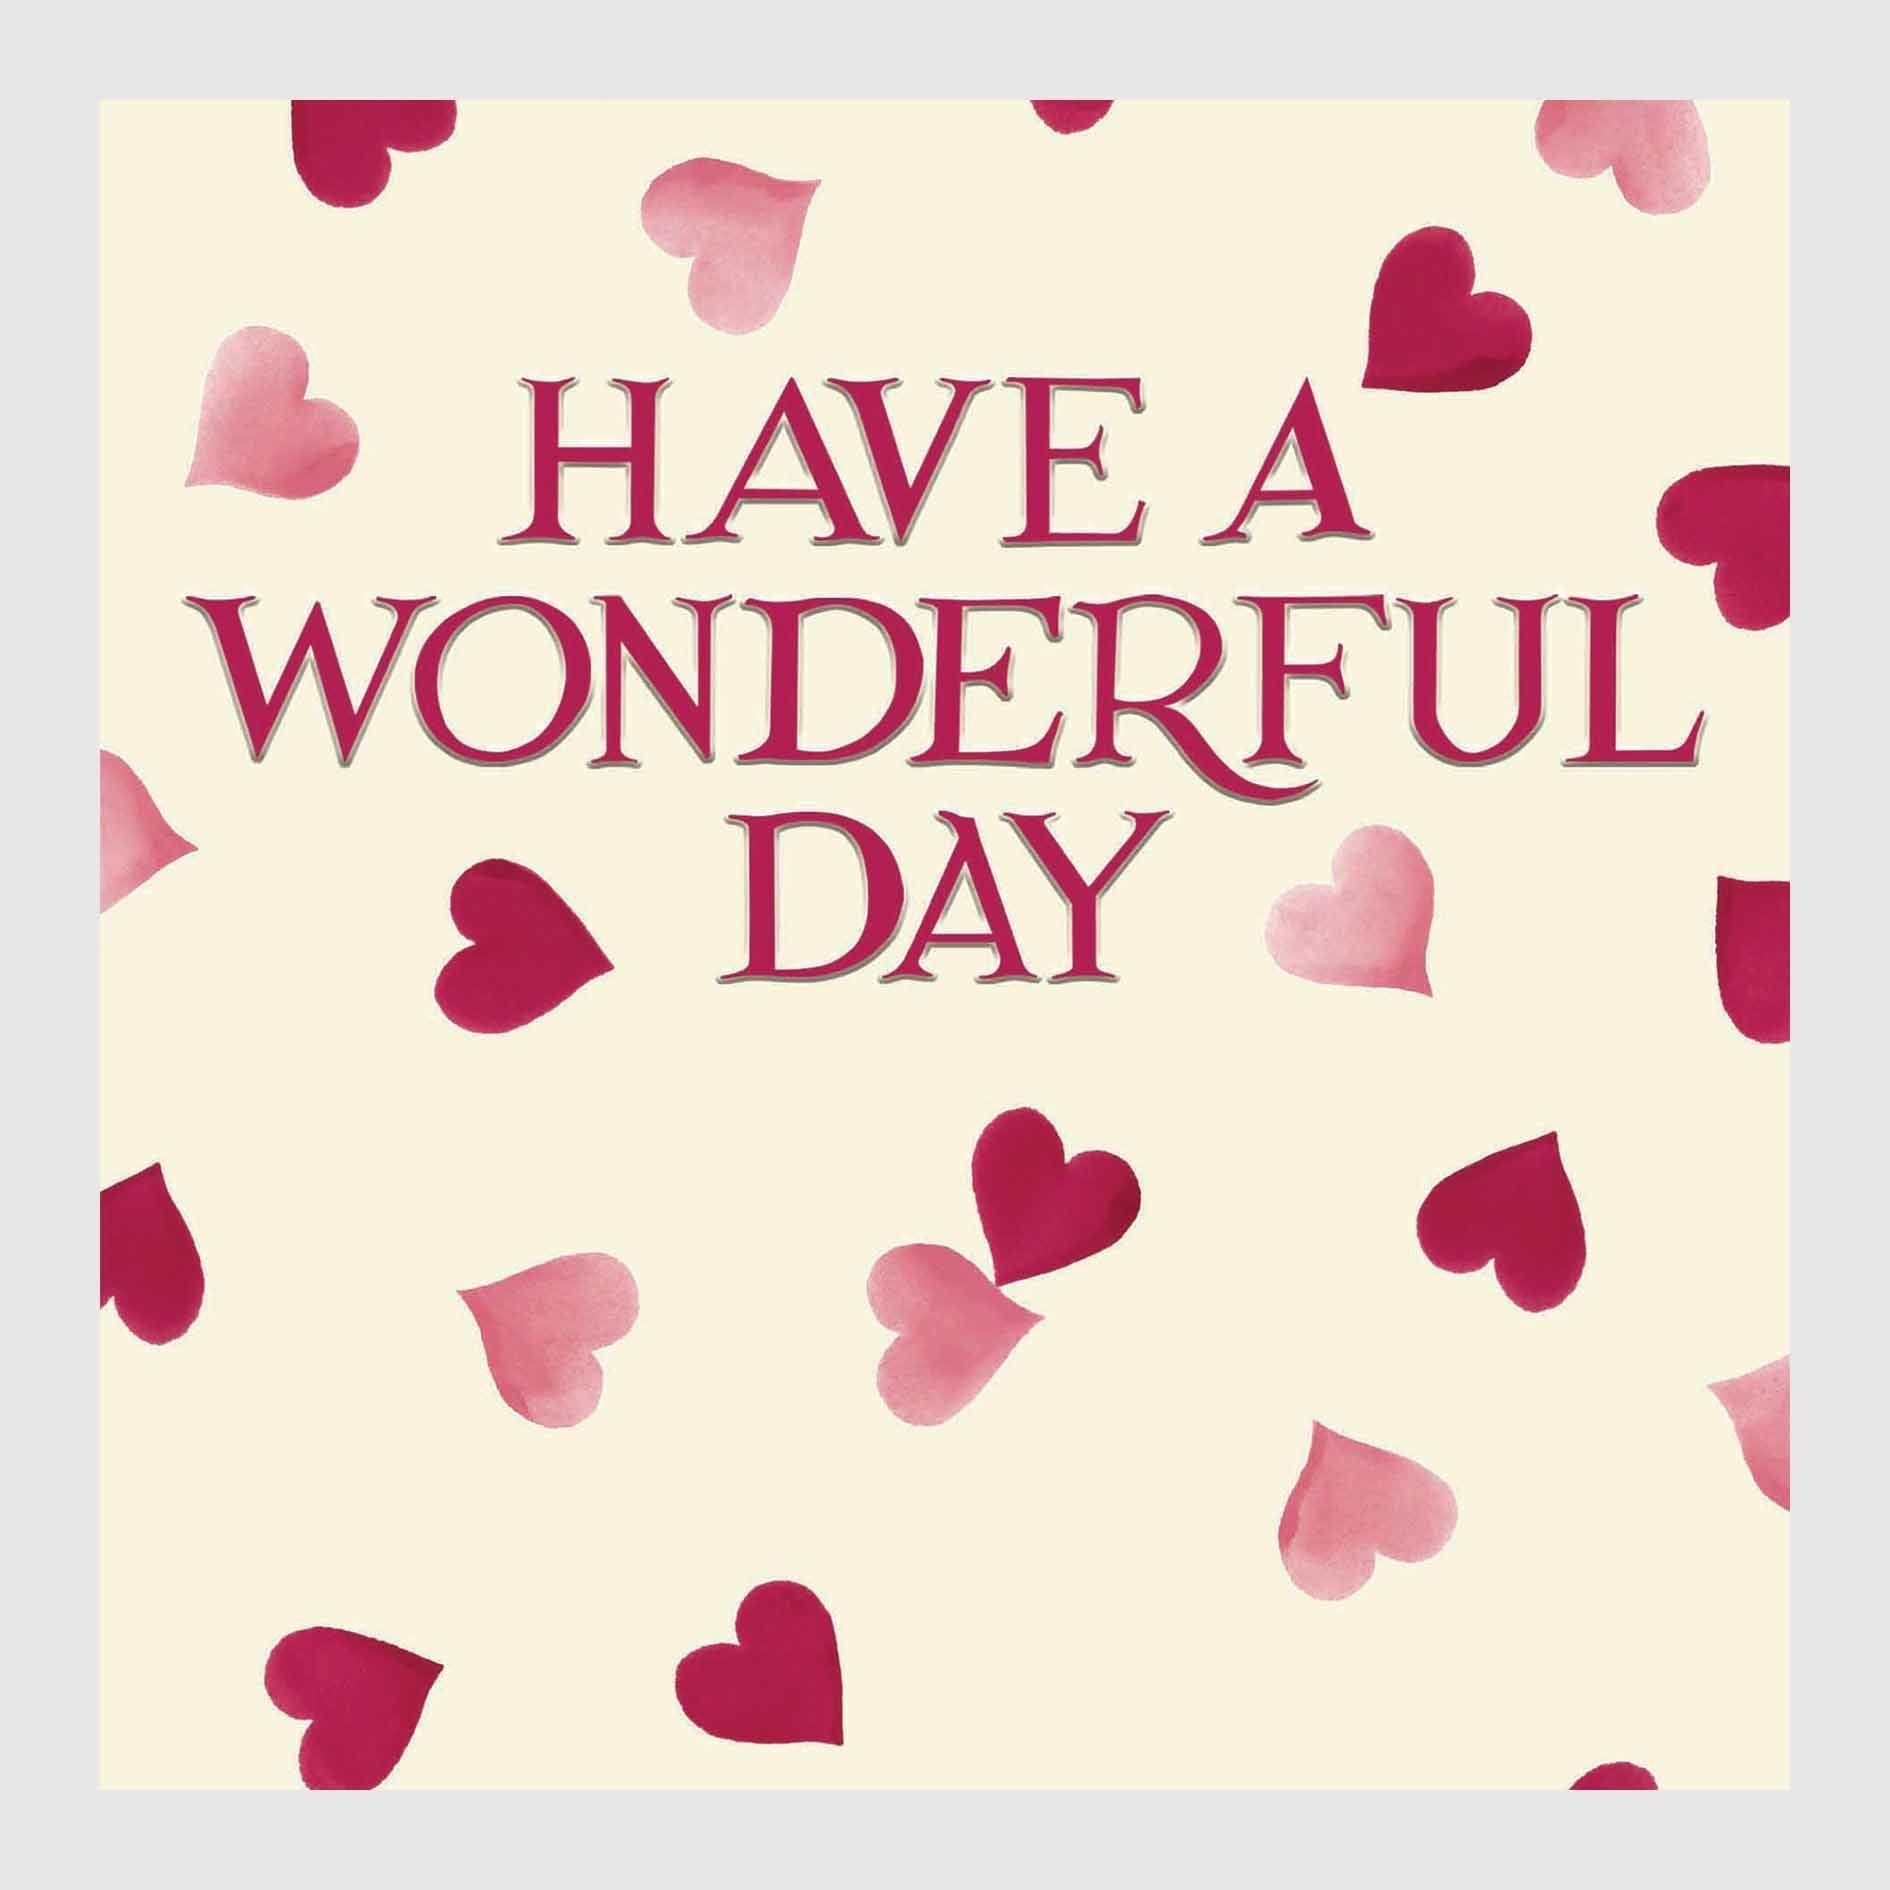 Have a Wonderful Day - Pink Hearts